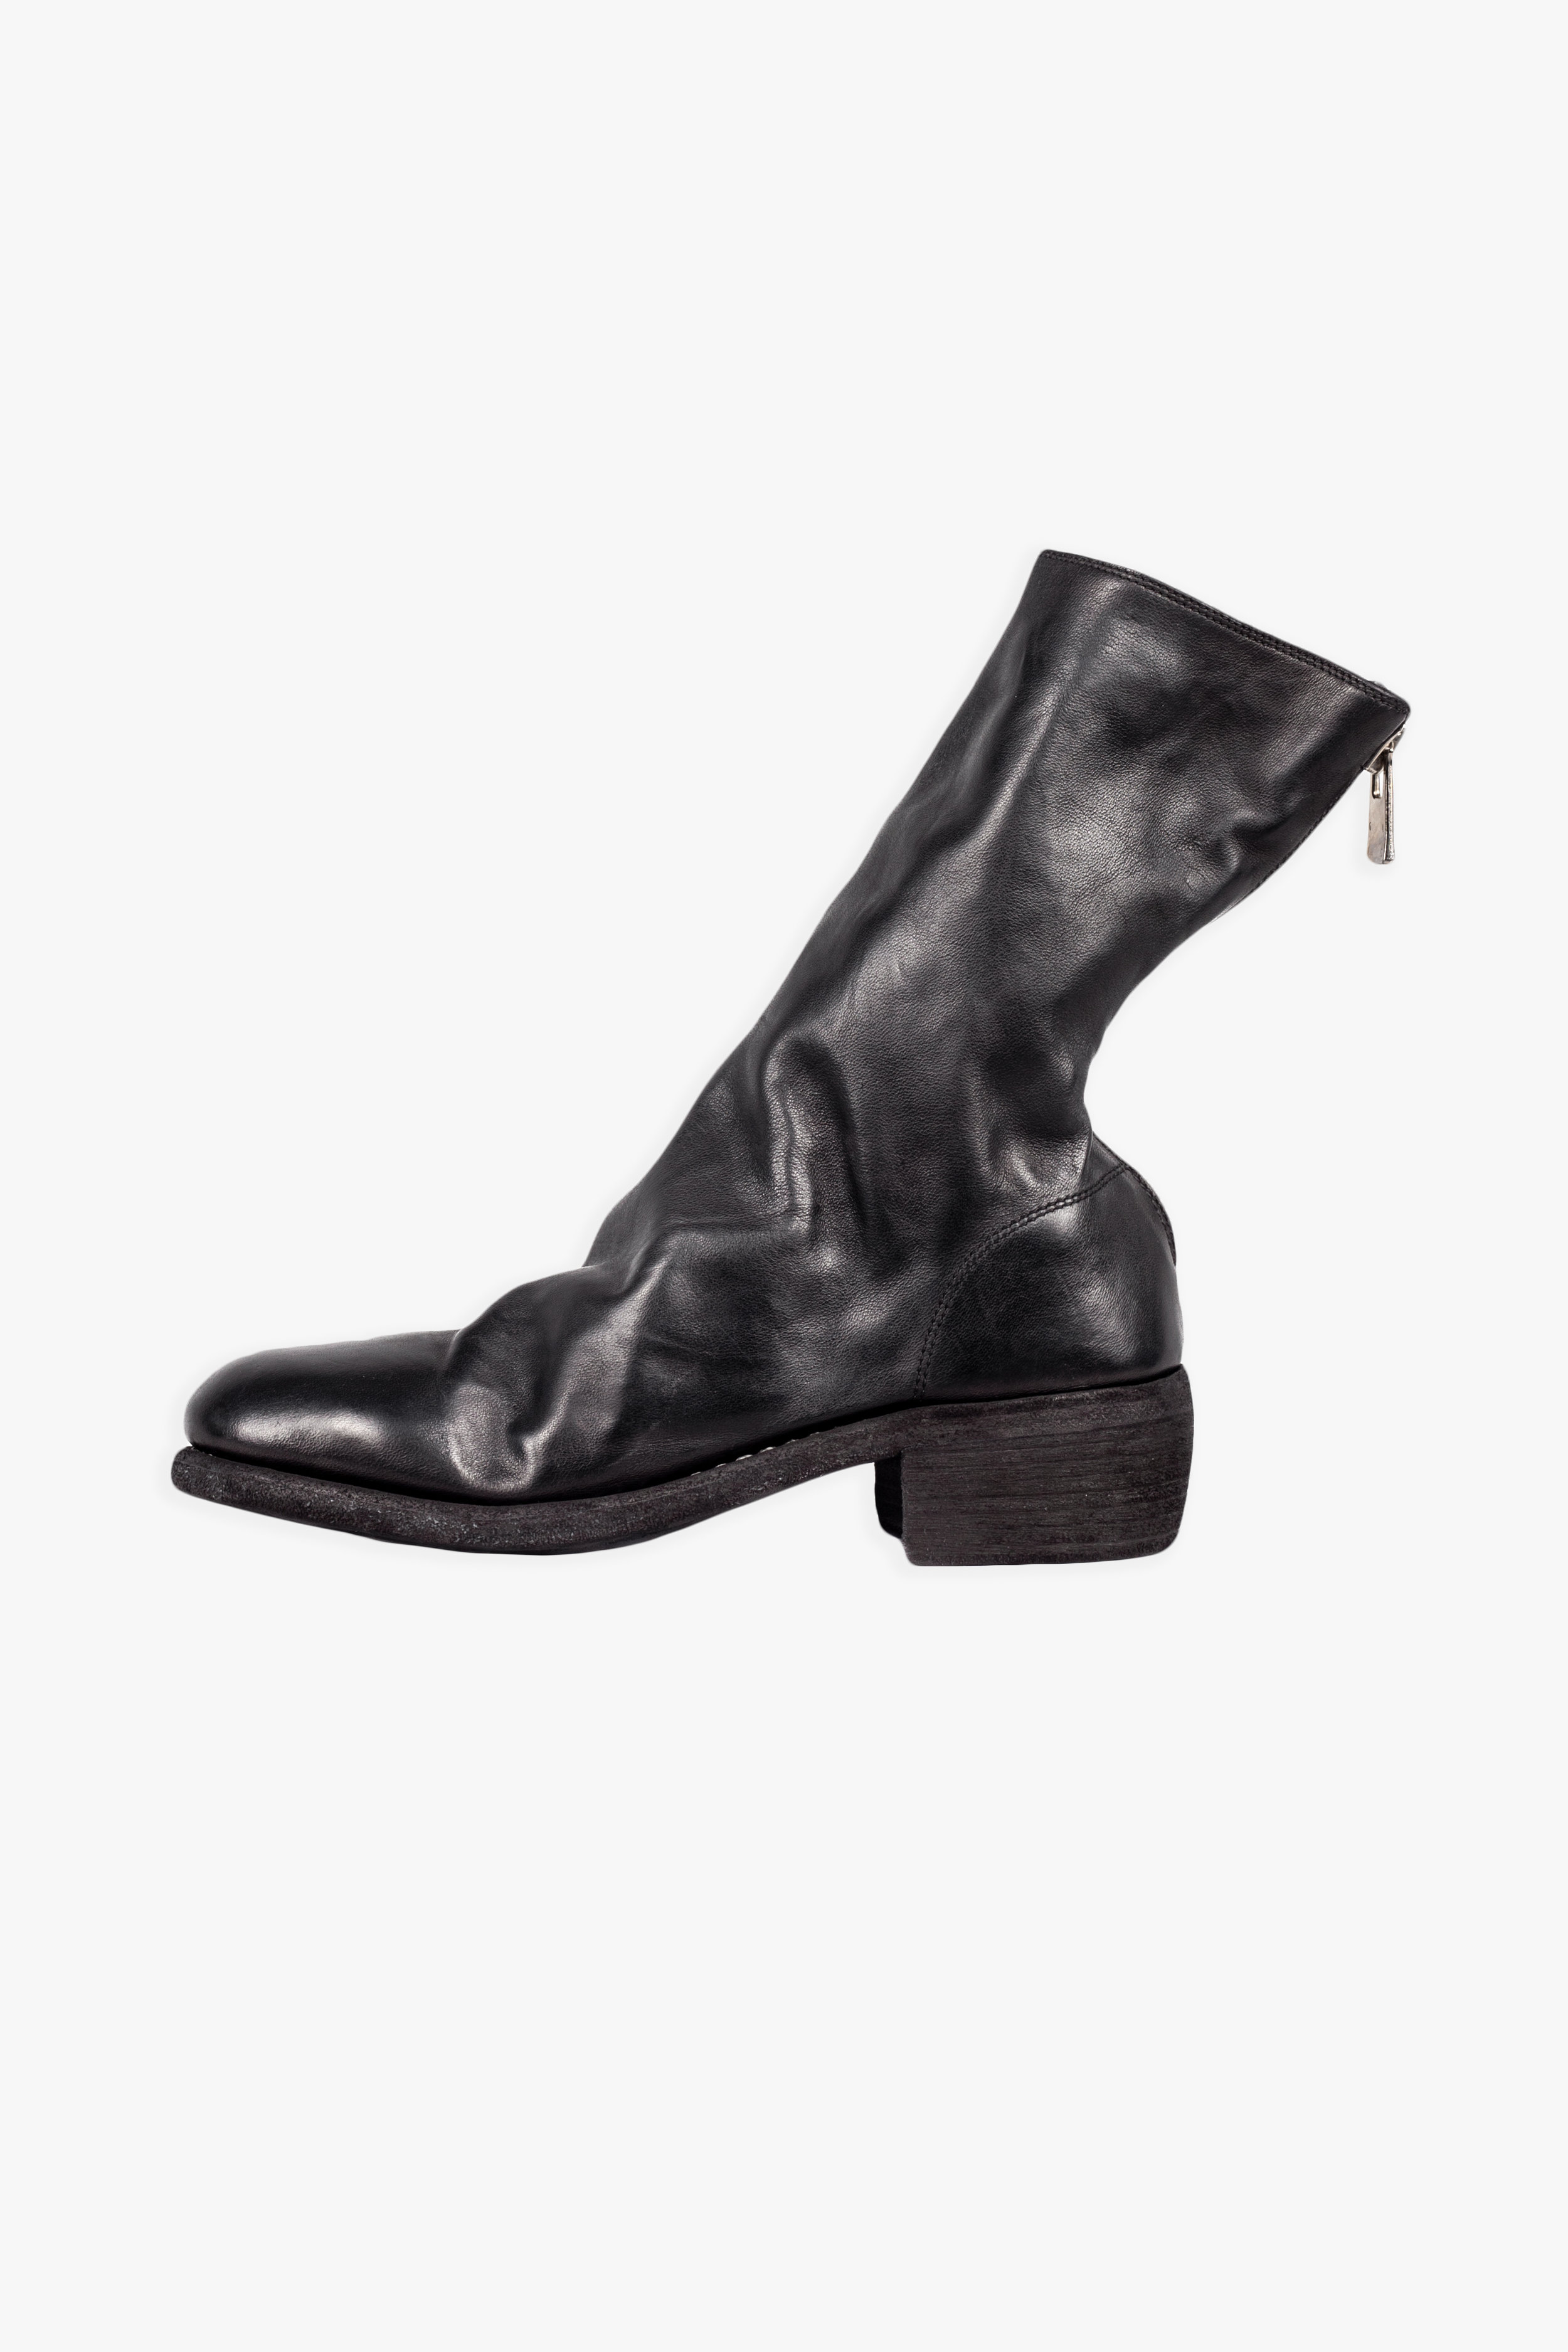 Luxury Boot E-Commerce Photograph